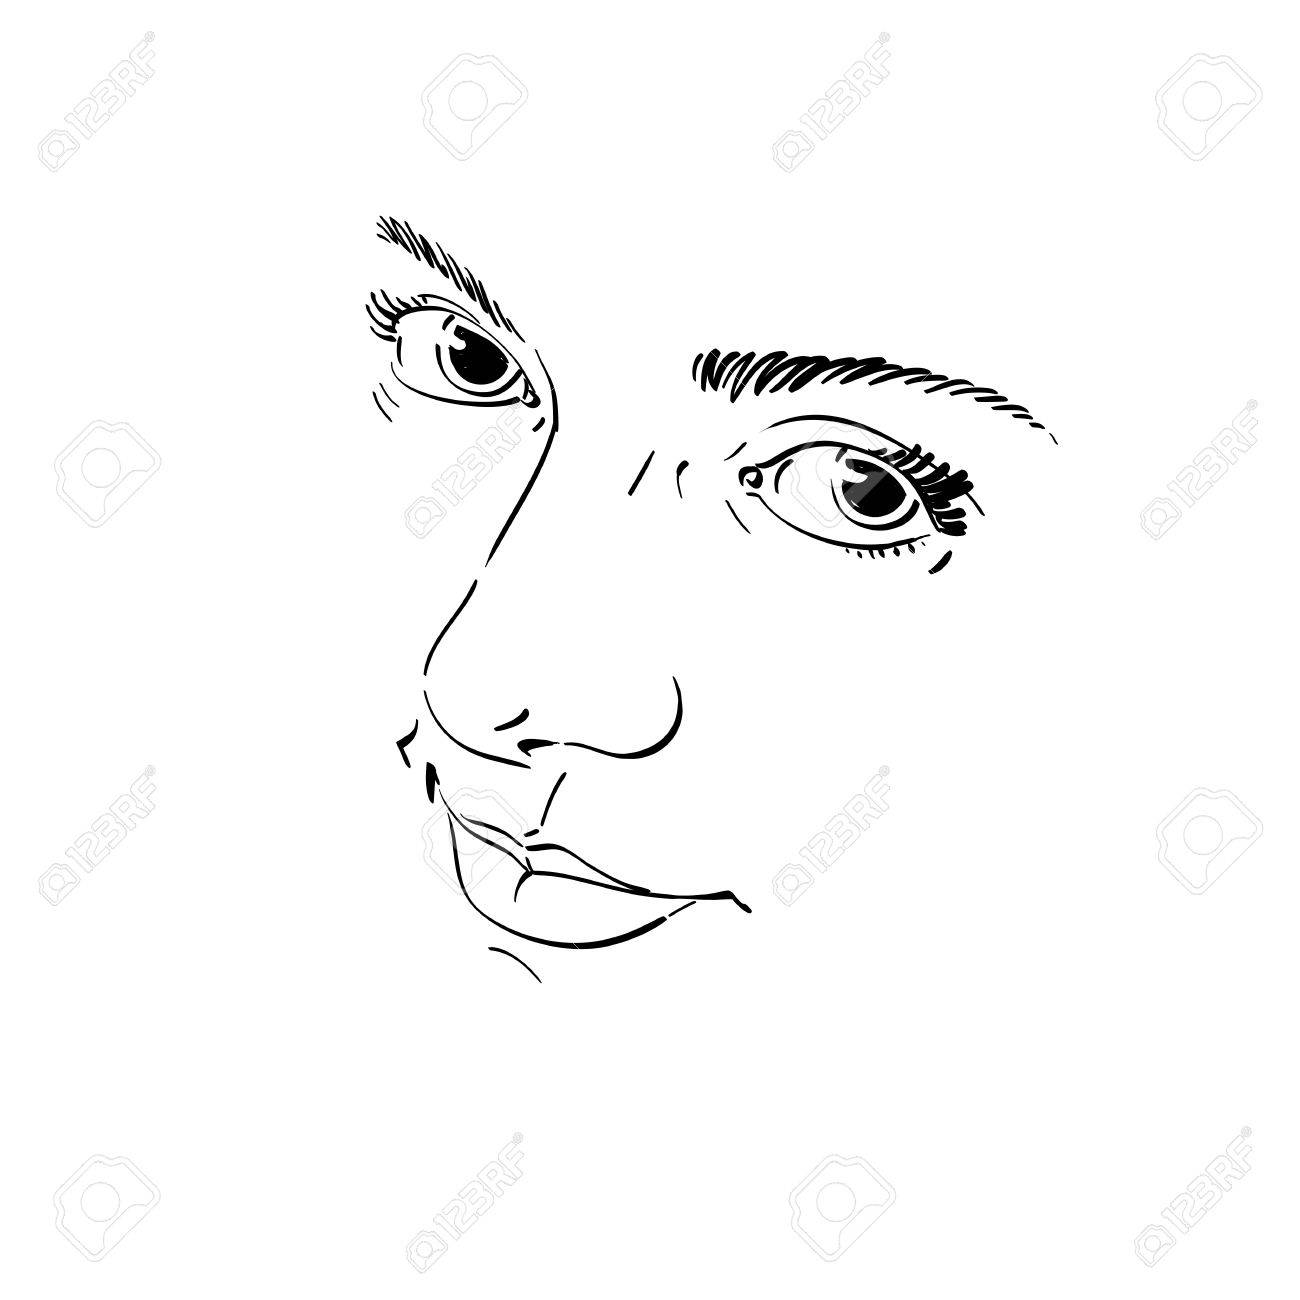 Illustration Visage monochrome silhouette of melancholic attractive lady, face features